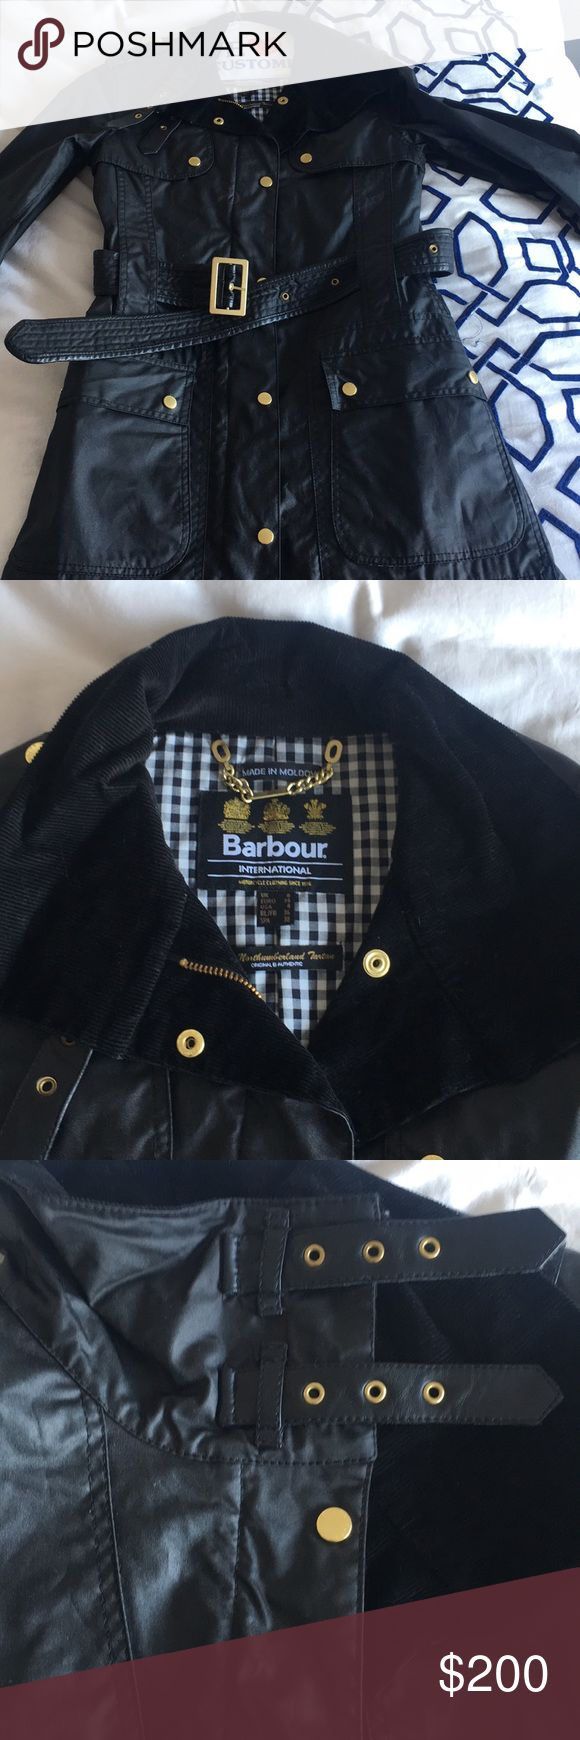 NEW women's Barbour International Wax Jacket Black NEVER WORN Barbour Ladies International Wax Jacket in Black. US size 4 / UK size 8 / EURO size 34 / FR size 36. Black corduroy collar and lining until midway down the coat opening. Gold buttons and belt buckle to adjust the waist. Barbour Jackets & Coats Utility Jackets